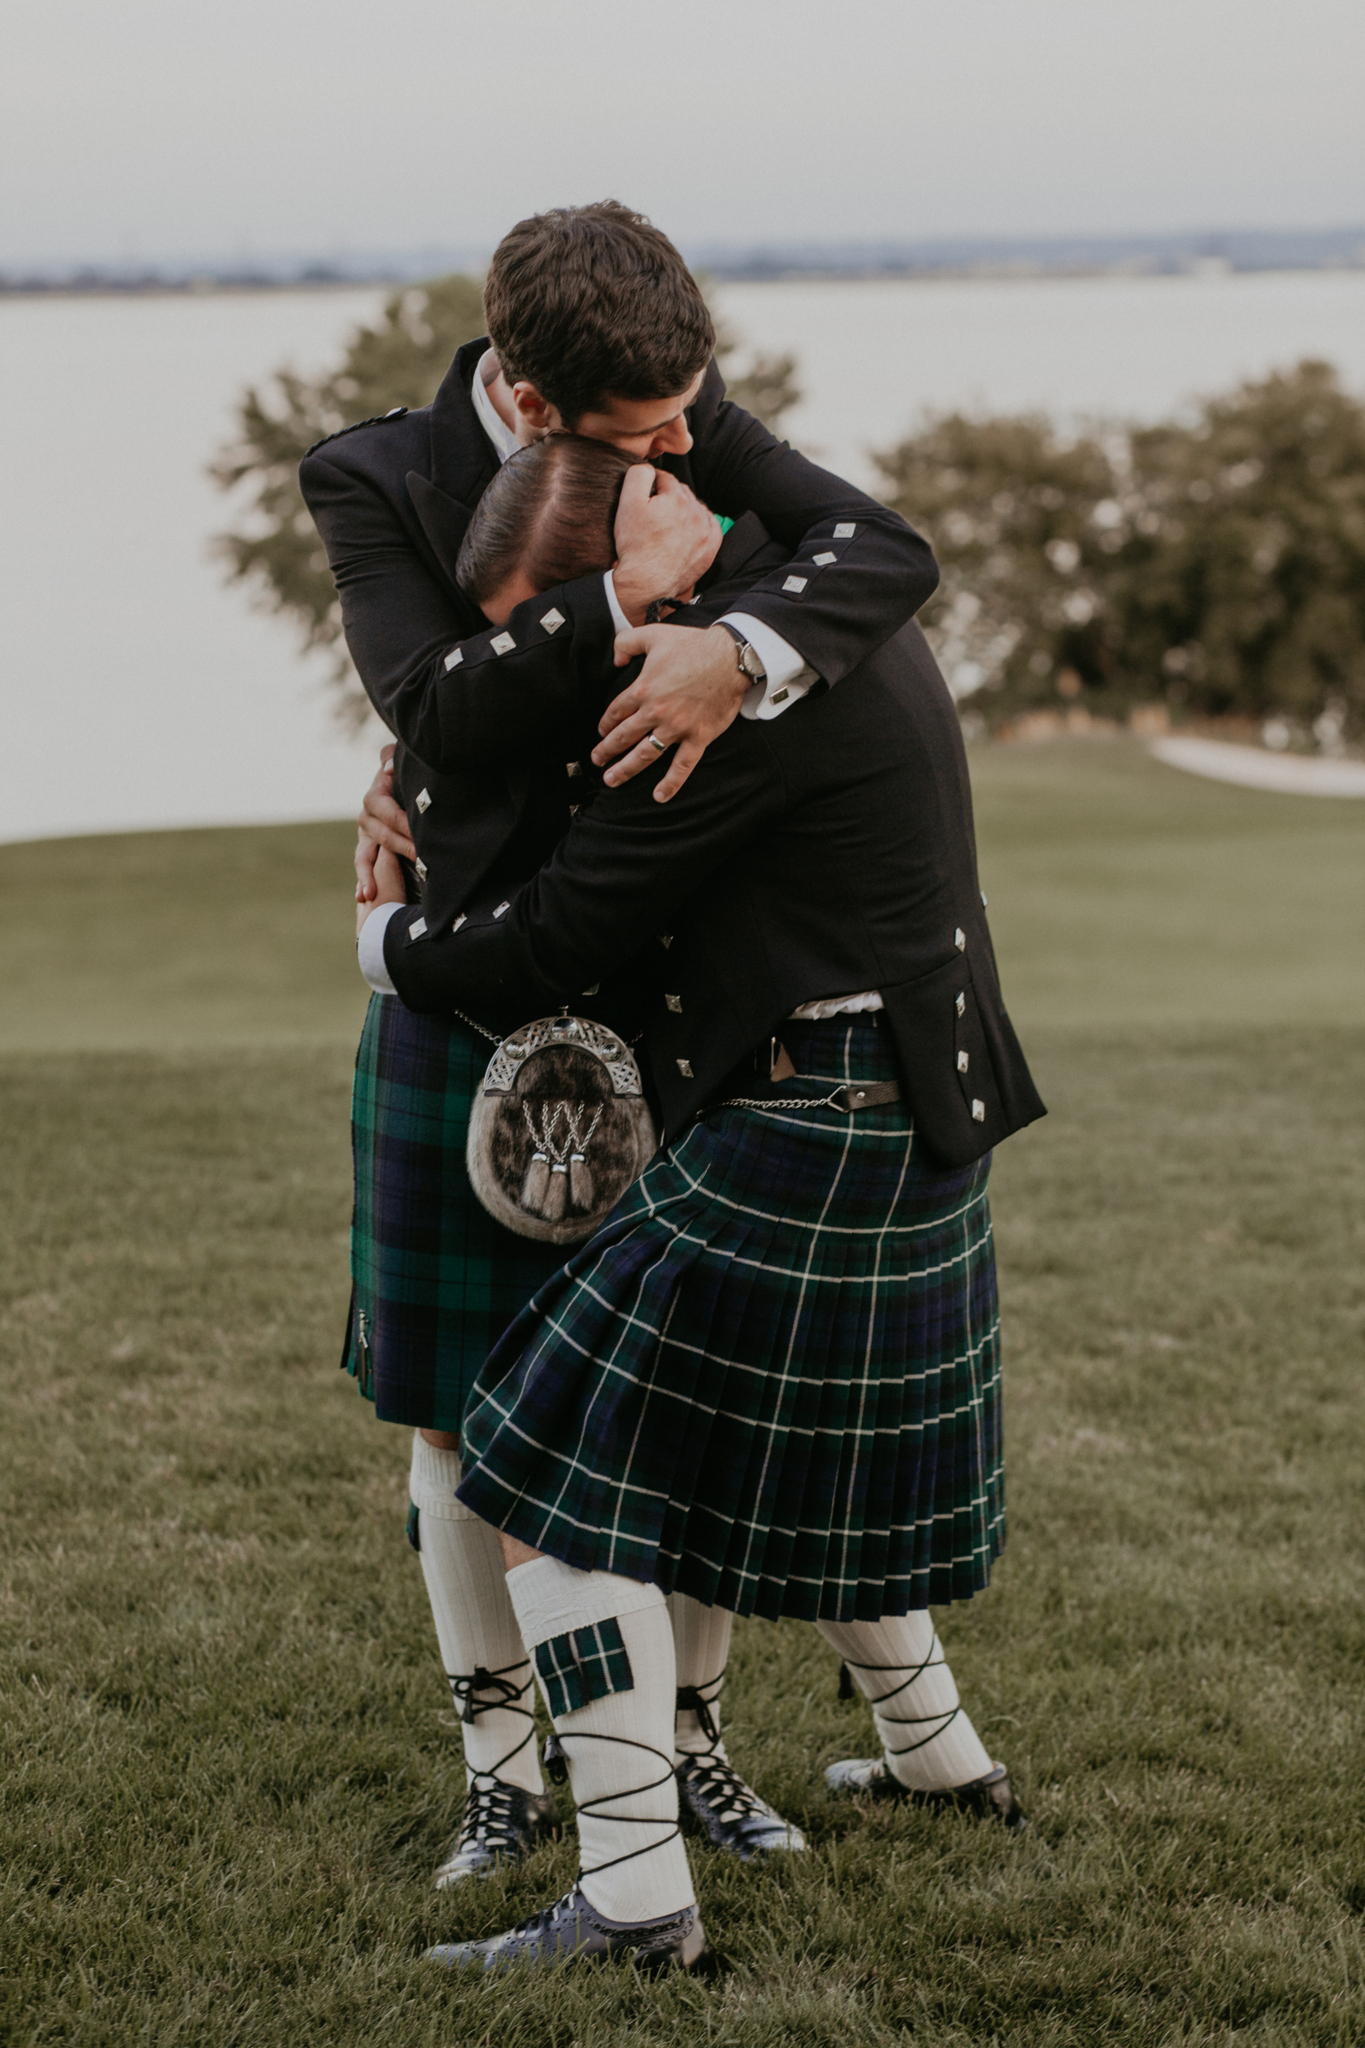 Documentary wedding photo candid of groom with best man hugging